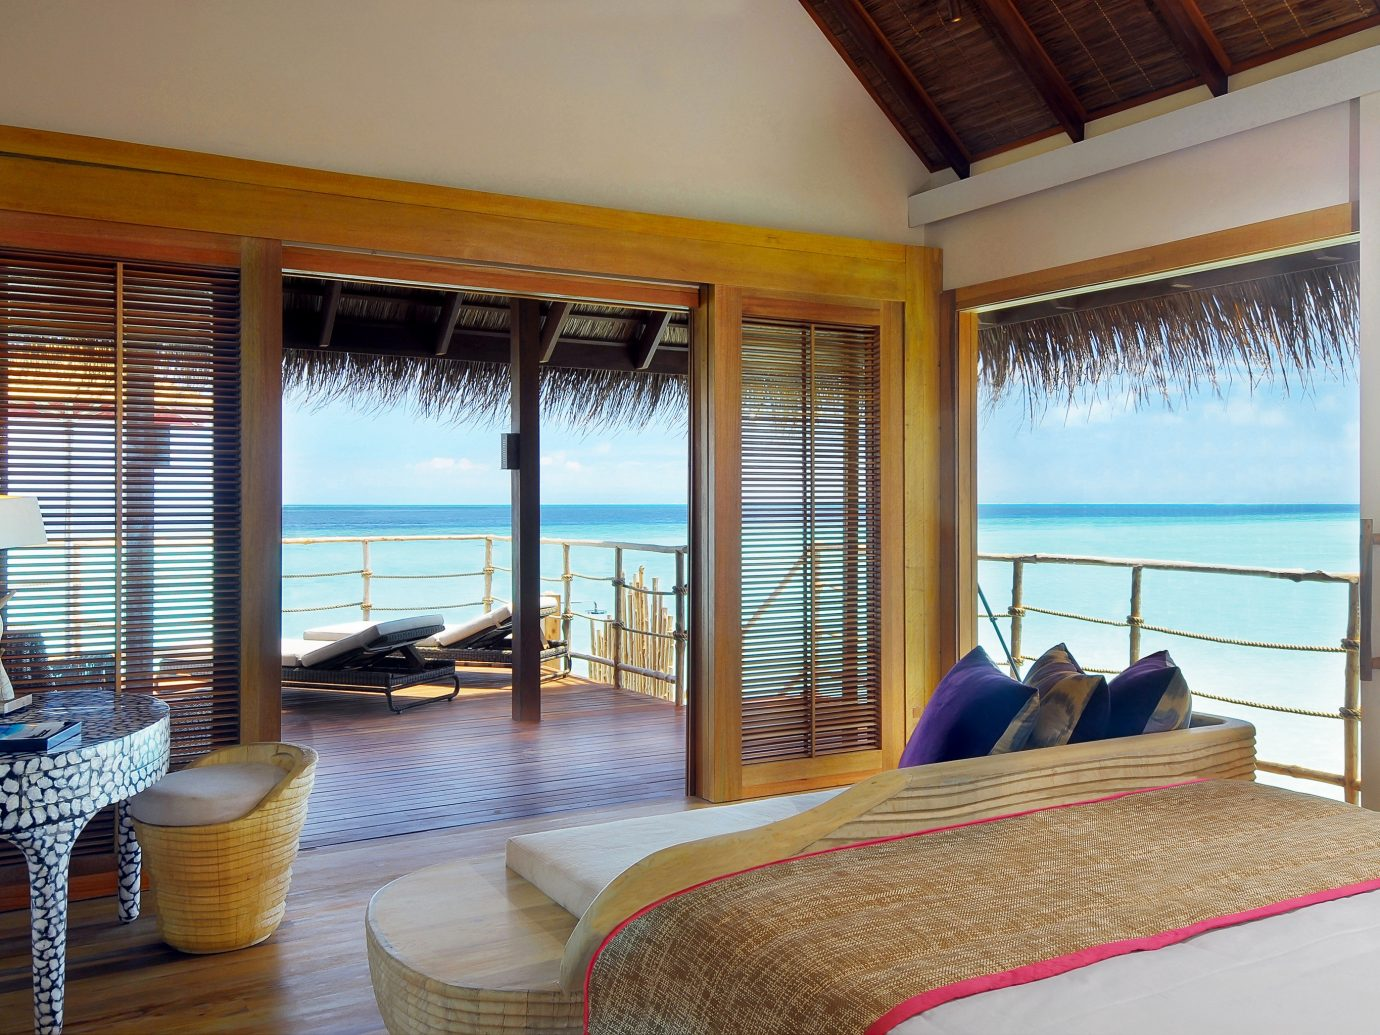 All-Inclusive Resorts Beachfront Bedroom Hotels Island Luxury Luxury Travel Overwater Bungalow Romance Romantic Suite Waterfront indoor window wall room property bed Resort hotel estate ceiling Villa real estate vacation condominium interior design cottage apartment swimming pool furniture overlooking